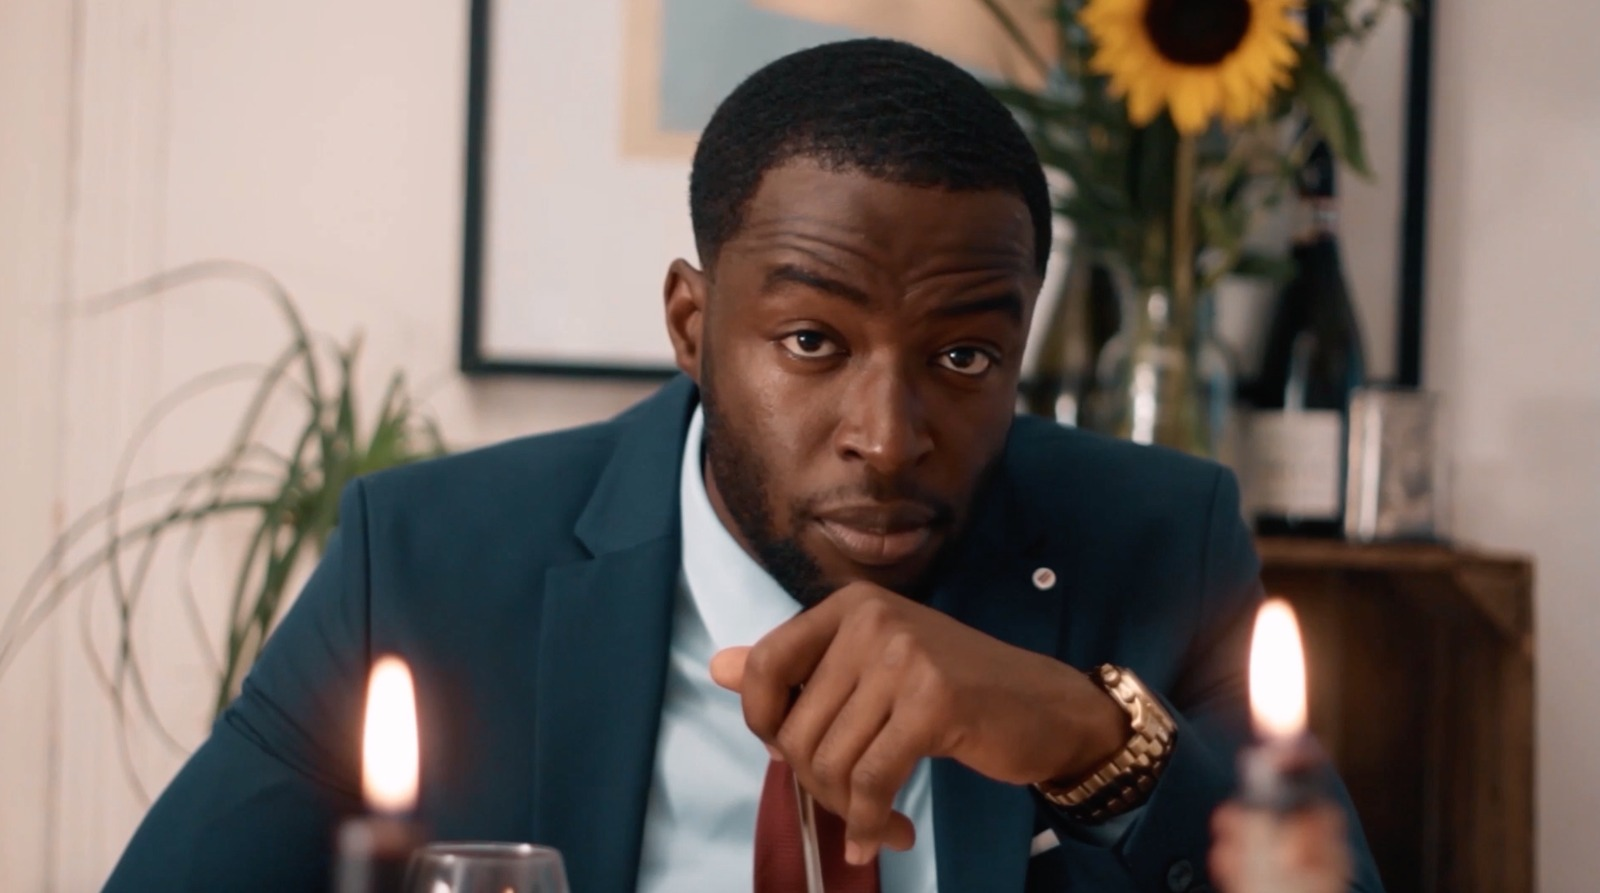 'there is rice at home' – introducing the interactive web series holding a mirror to black Britain | gal-dem